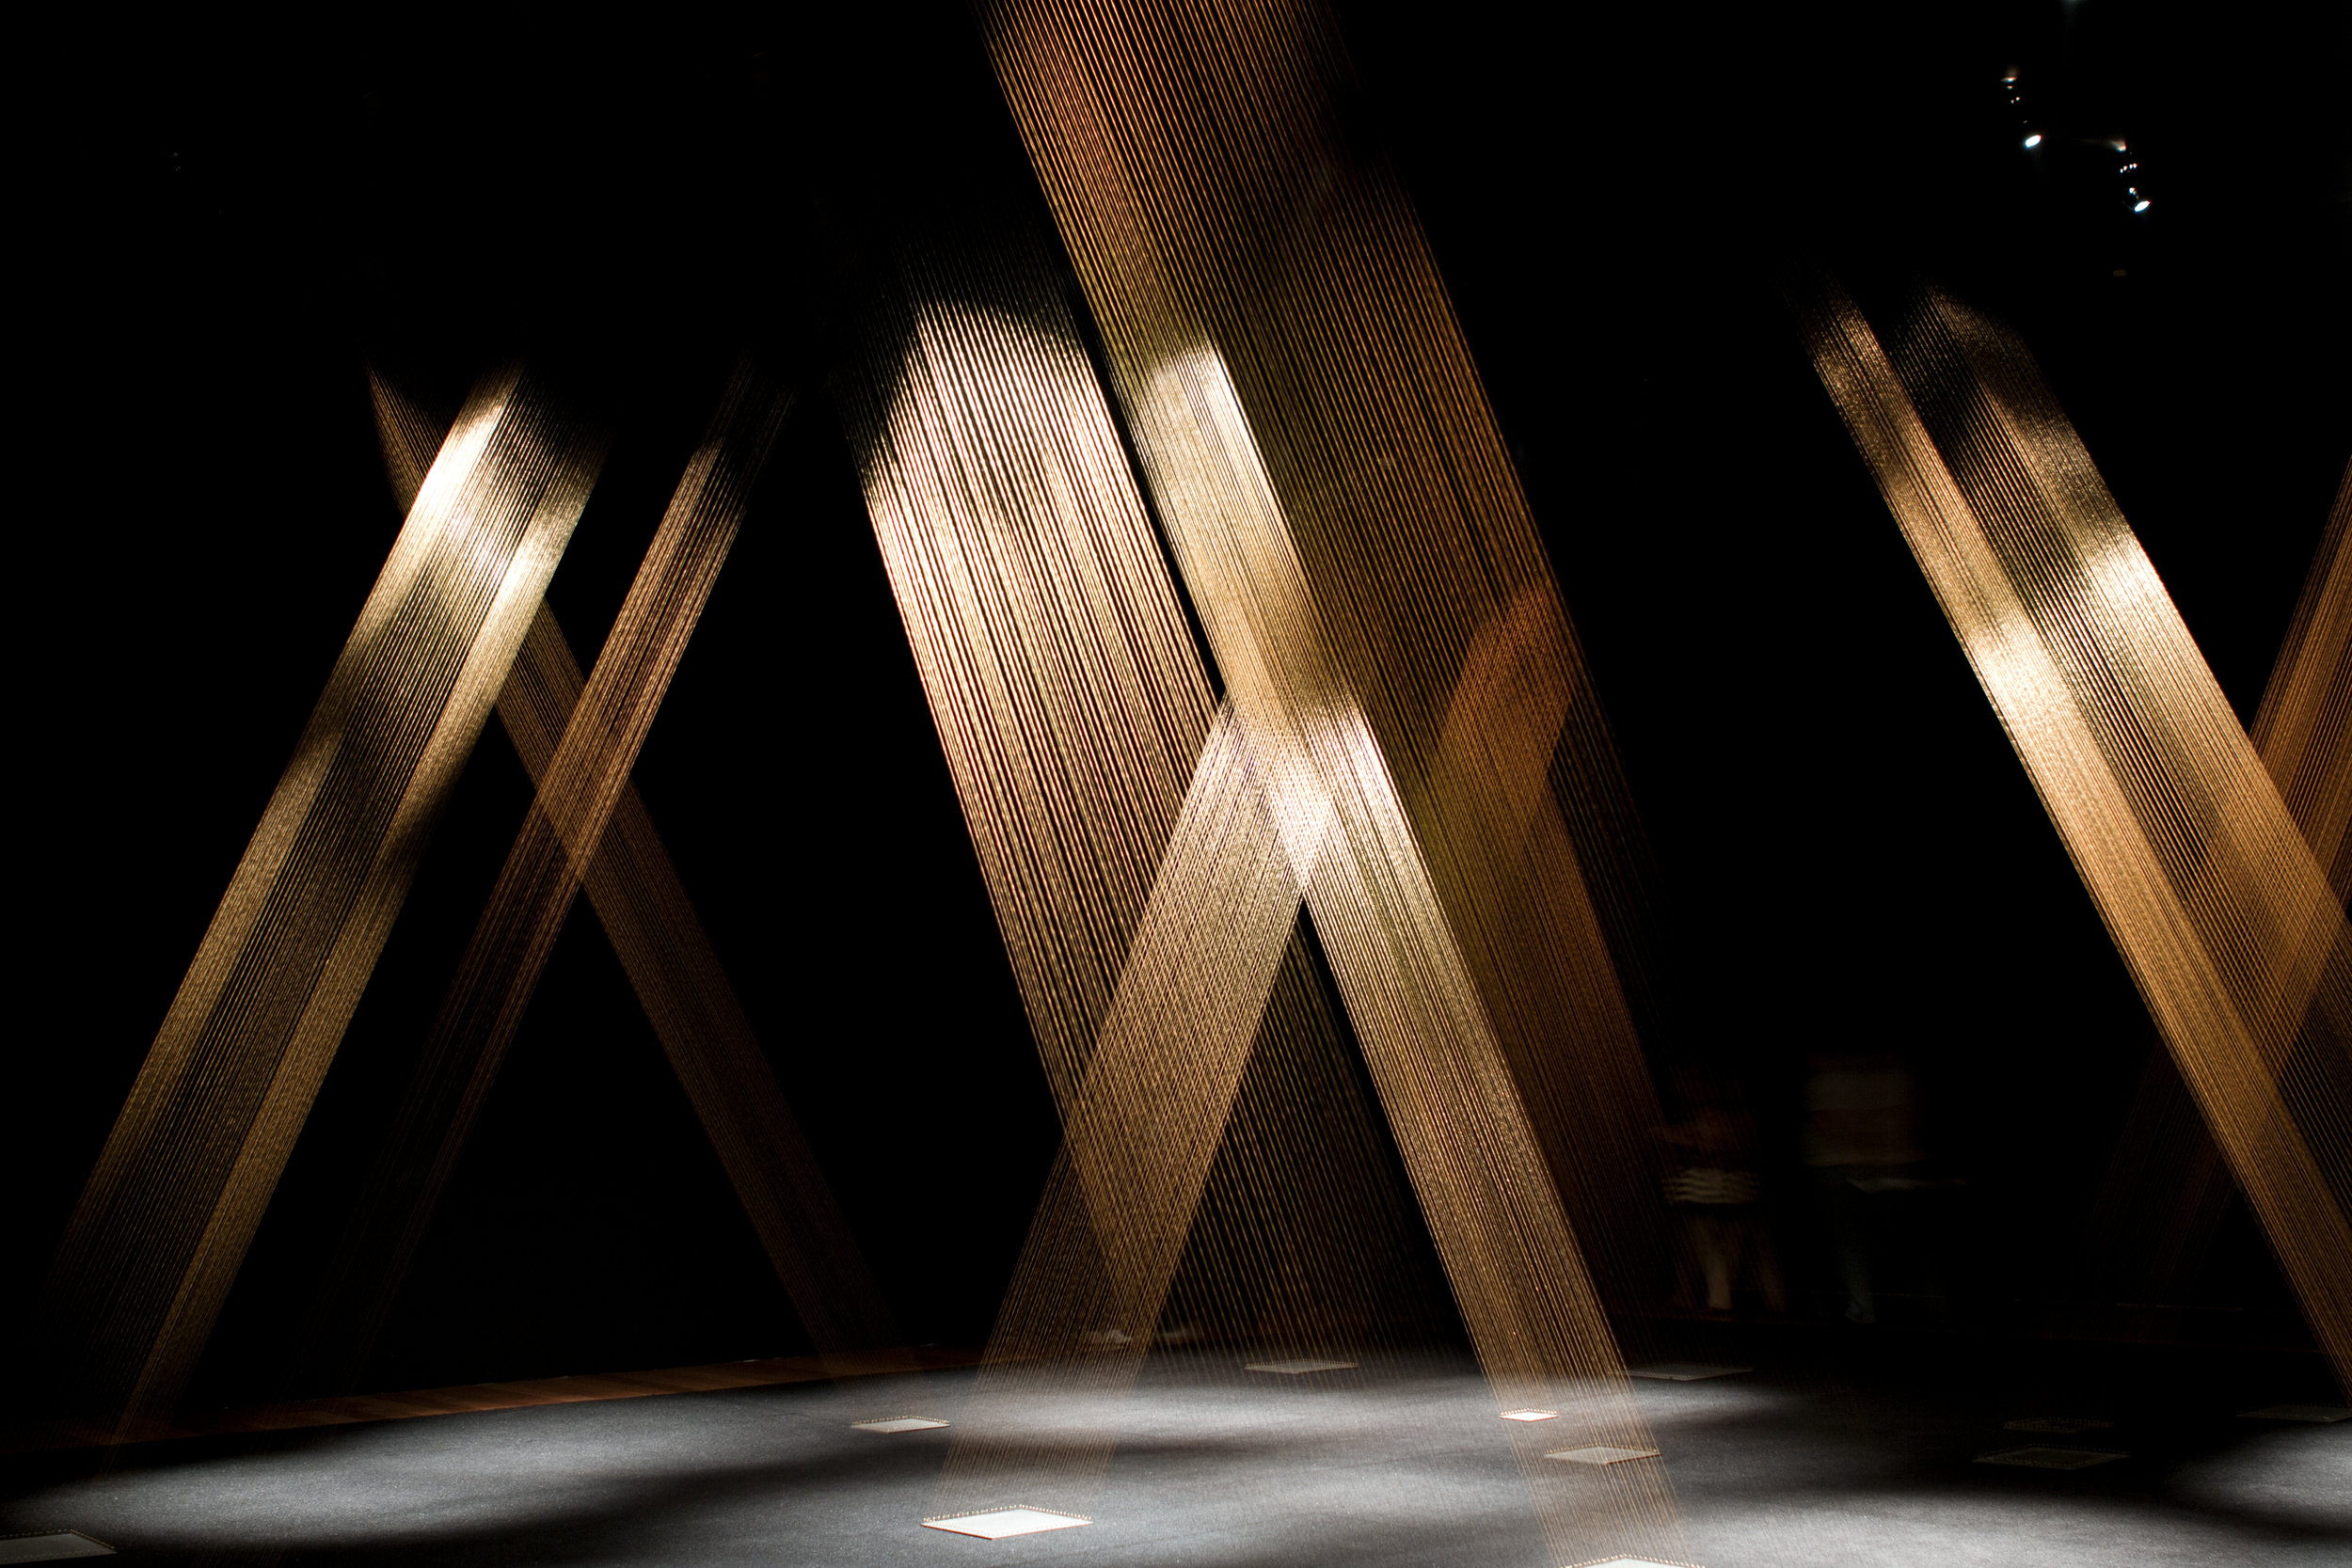 Lygia Pape (Brazilian, 1927–2004) Ttéia 1, C 1976-2004 Dimensions variable Installation View, Serpentine Gallery, London, 2011 Golden thread, nails, wood, light Photo: Paula Pape © Projeto Lygia Pape